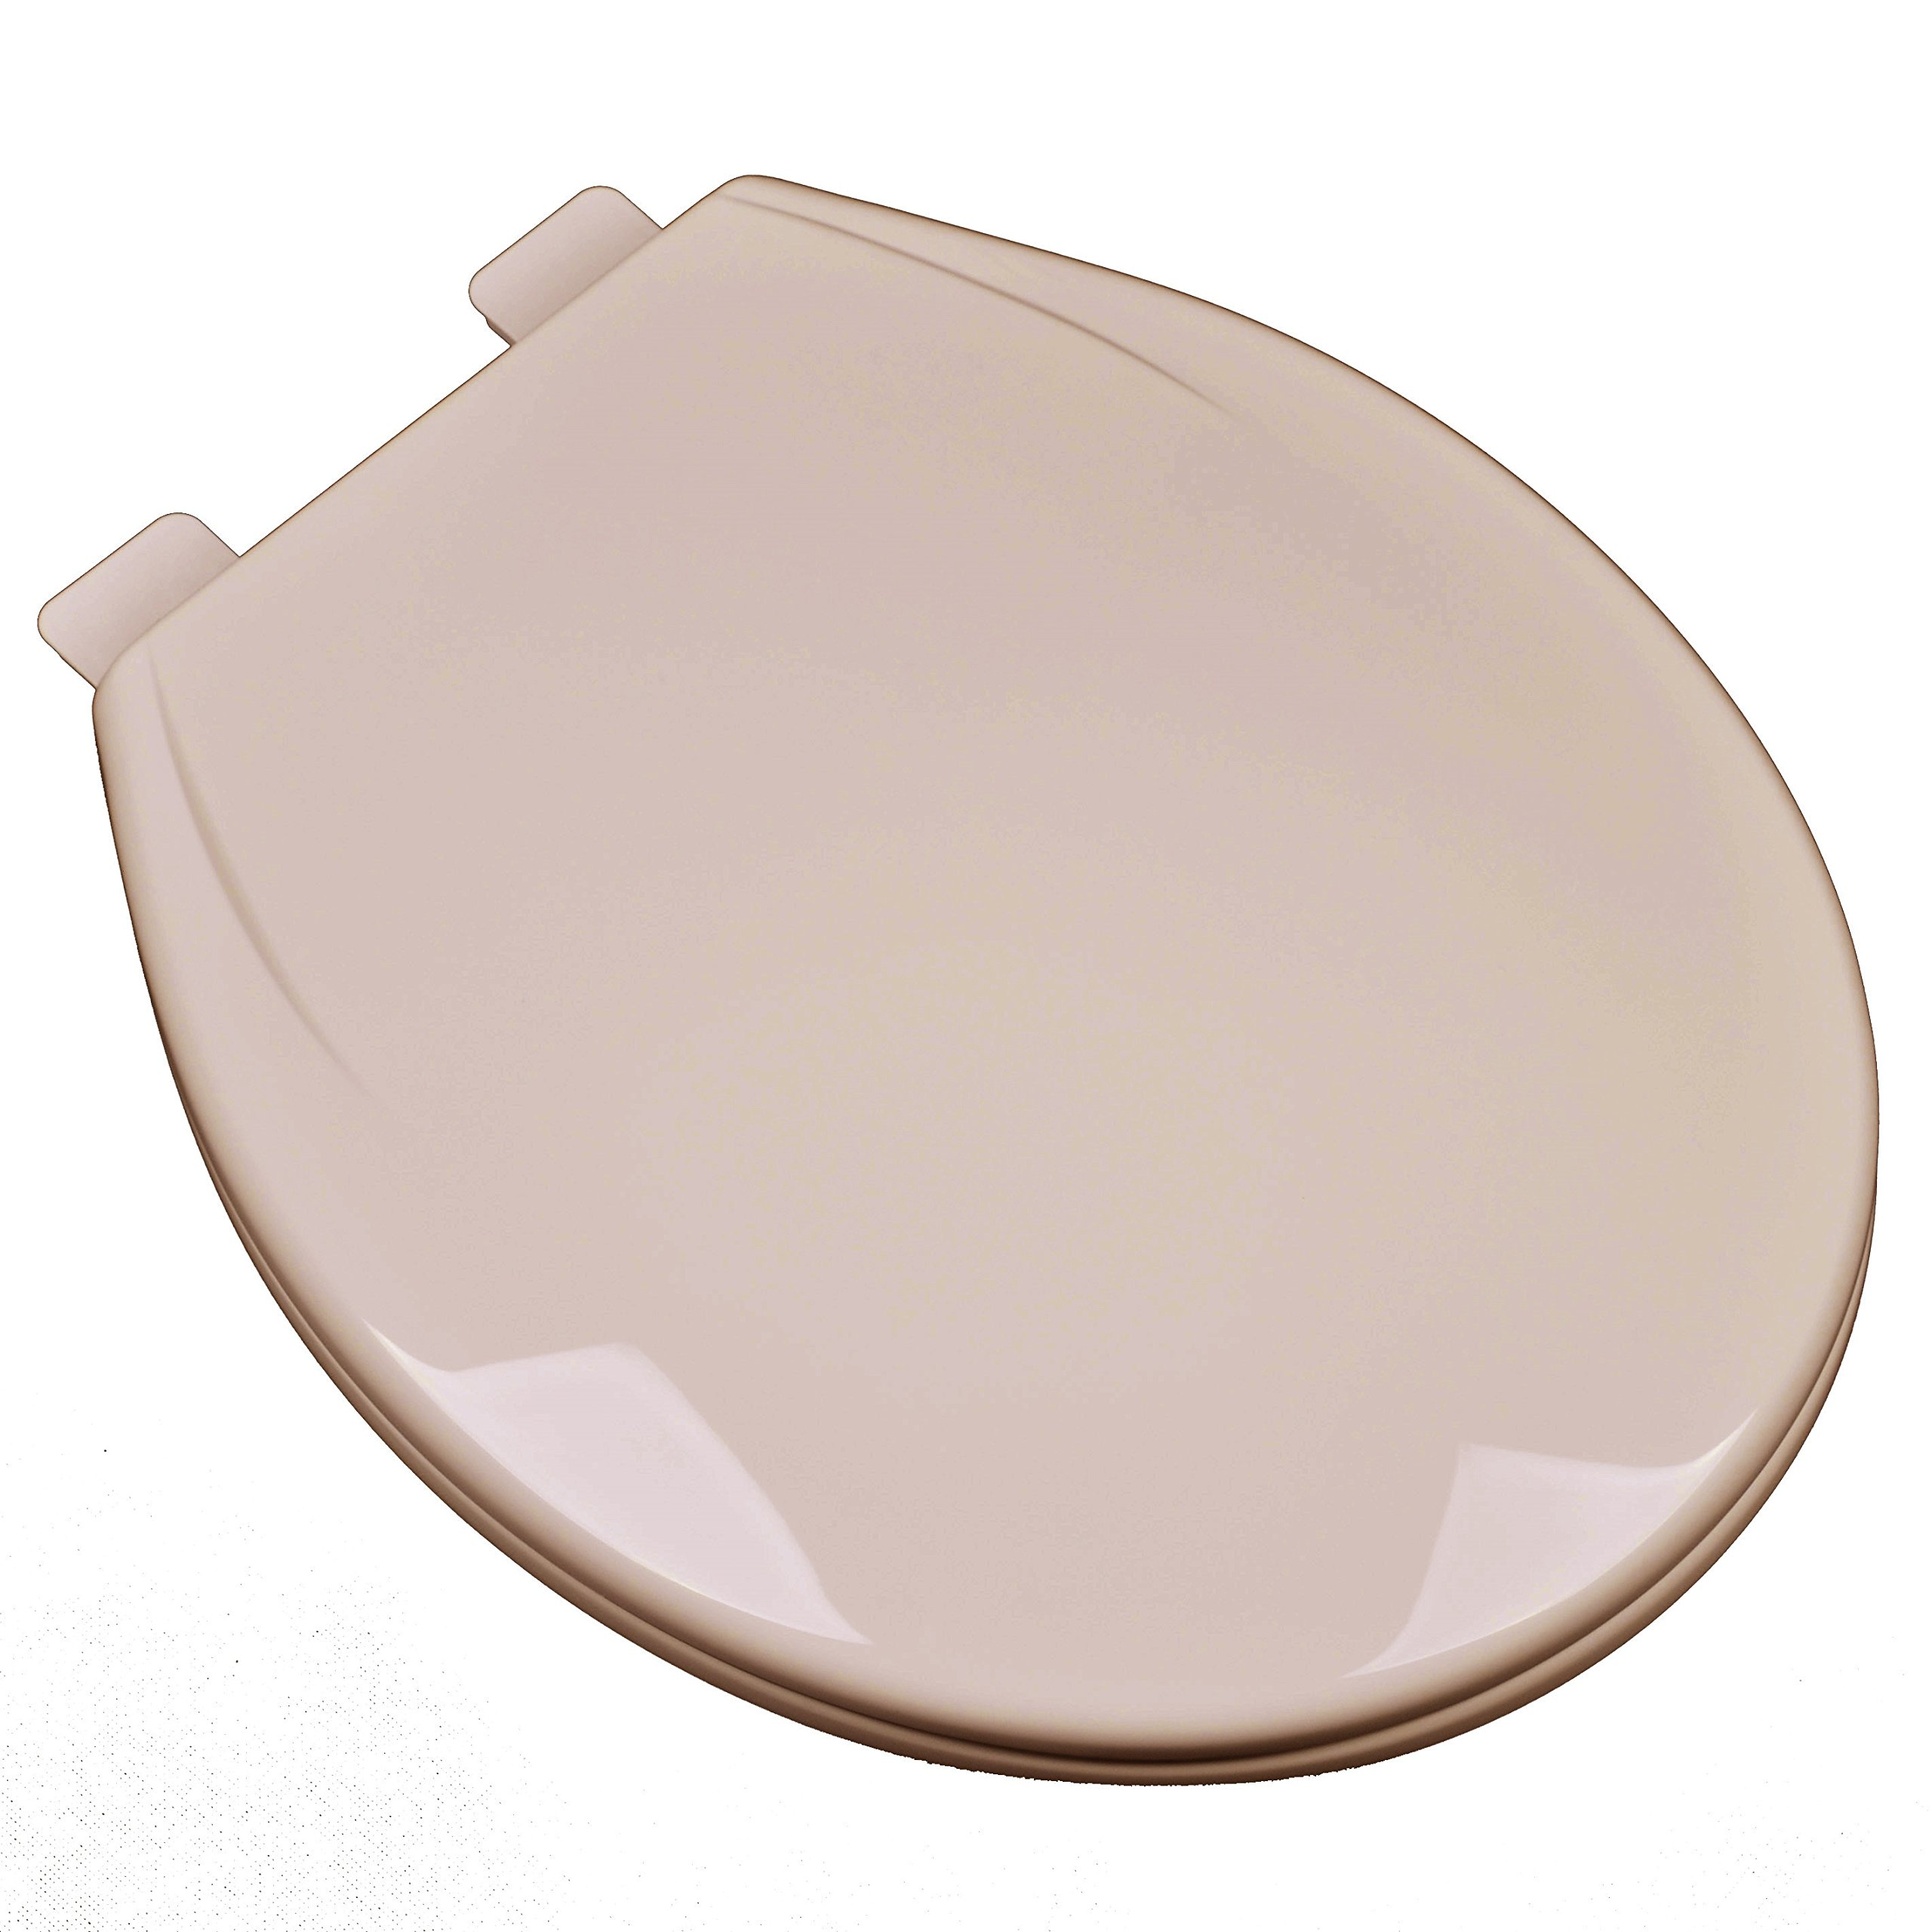 Bath Décor 2F1R6-30 Slow Close Plastic Round Top Mount Toilet Seat with Adjustable Release and Clean Hinge